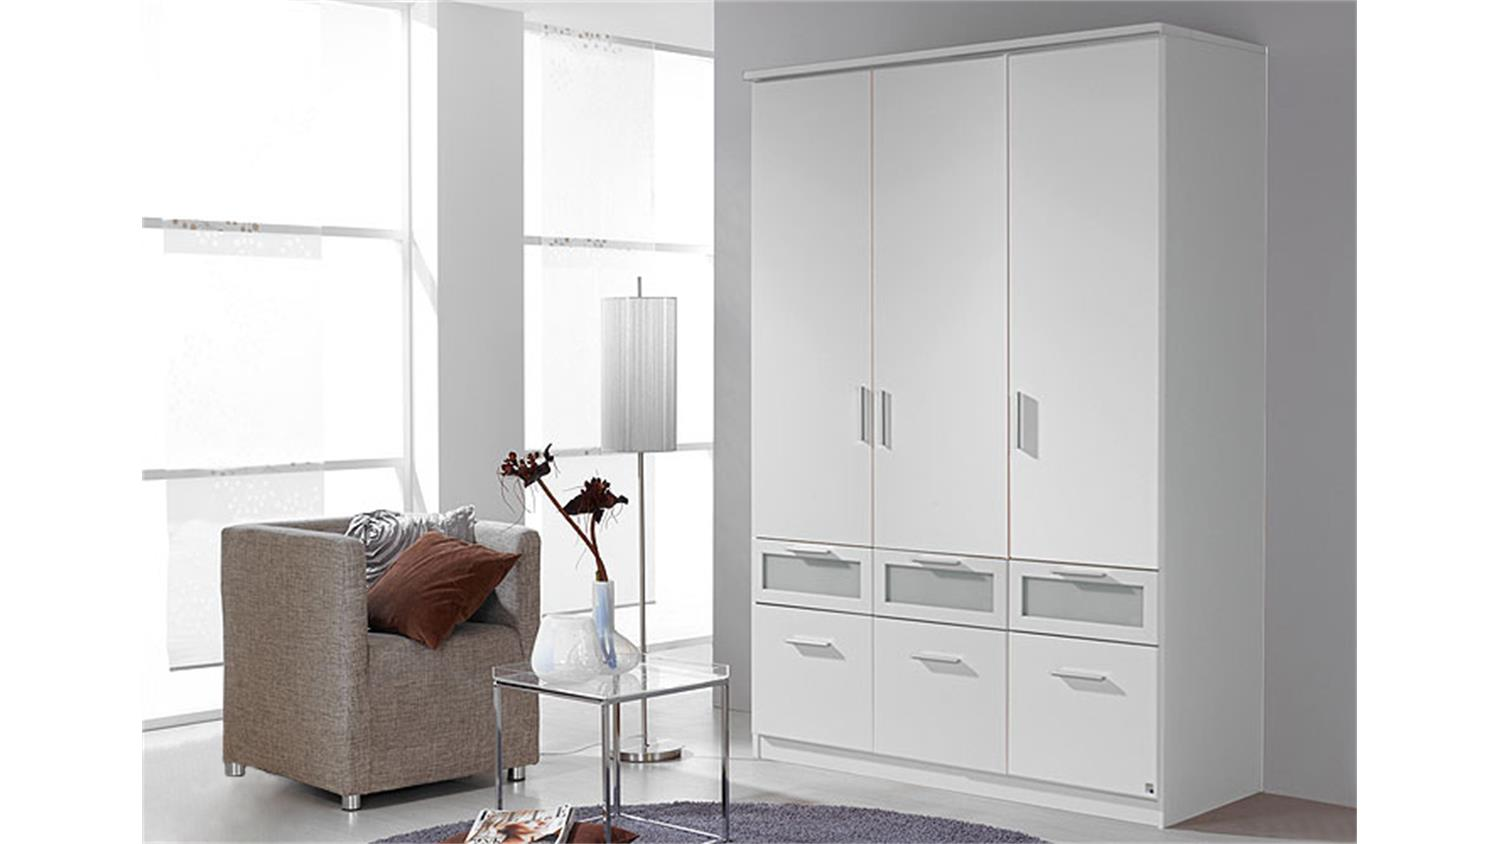 kleiderschrank wei schiebet ren 300 cm schr nke mit. Black Bedroom Furniture Sets. Home Design Ideas